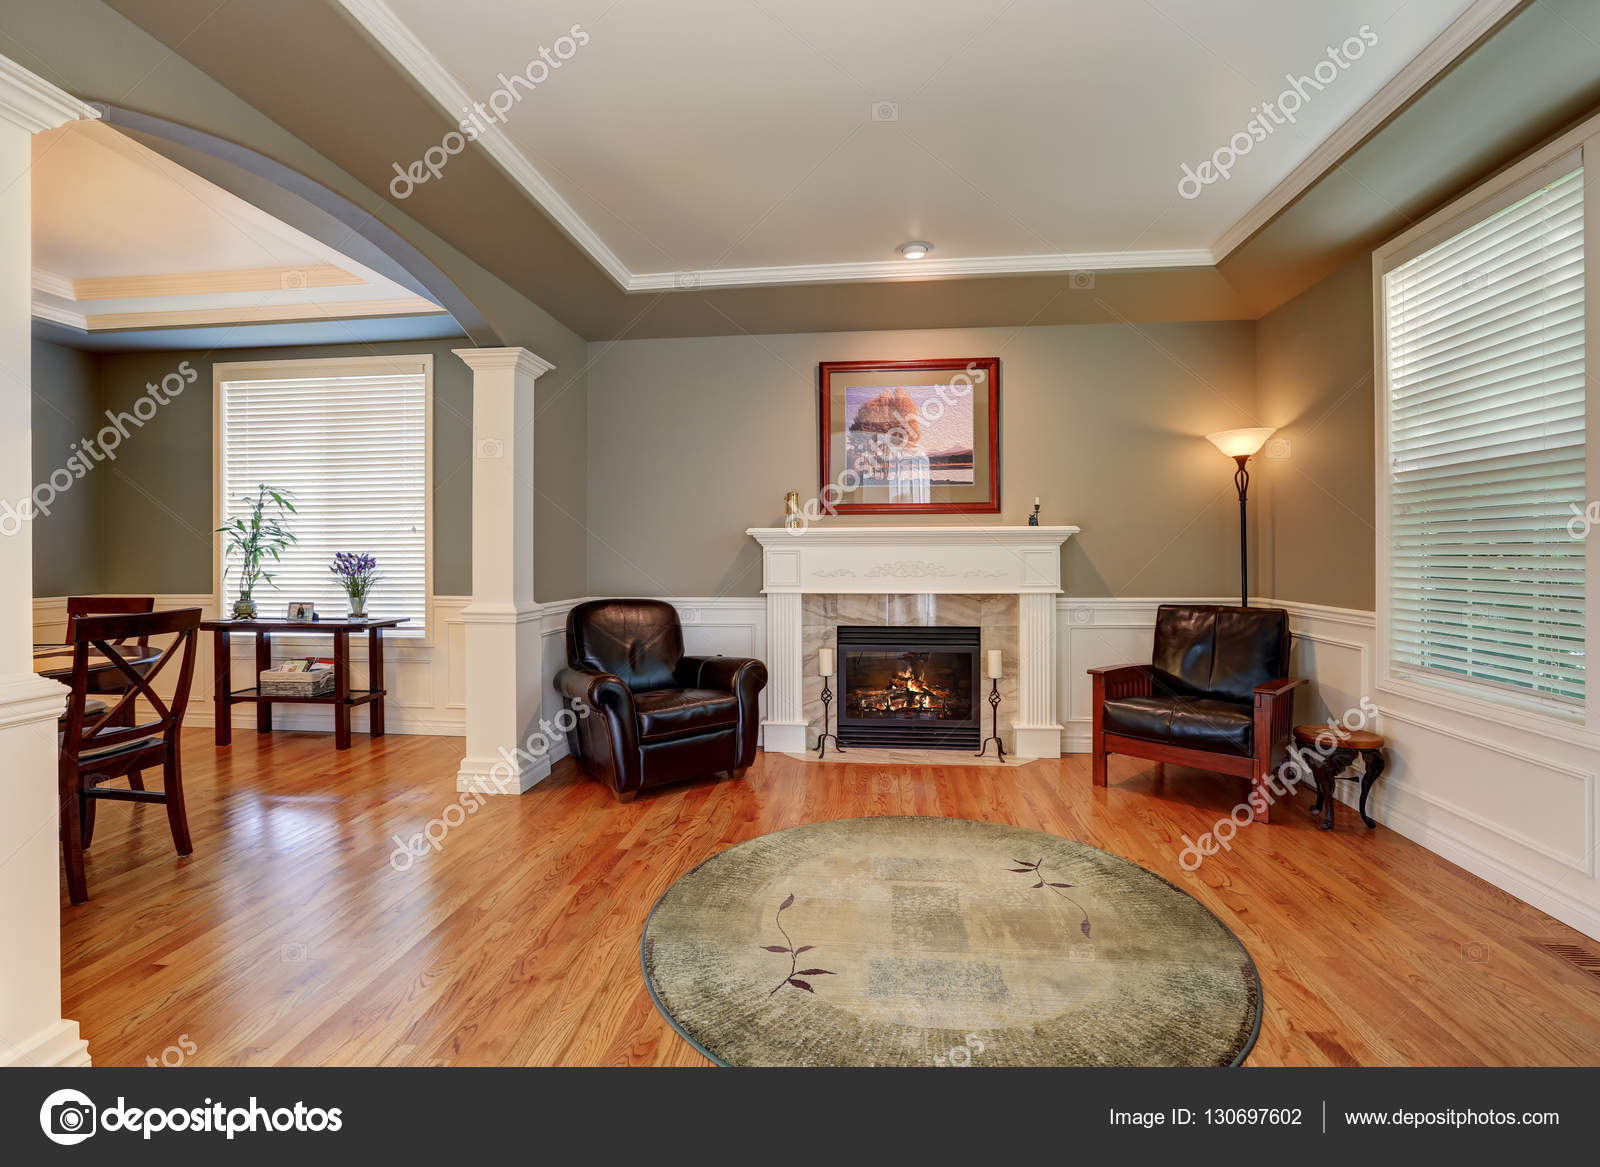 Craftsman style living room Fireplace Craftsman Style Living Room Interior Design With Fireplace Arched Entry To The Dining Room northwest Usa Photo By Iriana88w Depositphotos Craftsman Style Living Room Interior Design Stock Photo